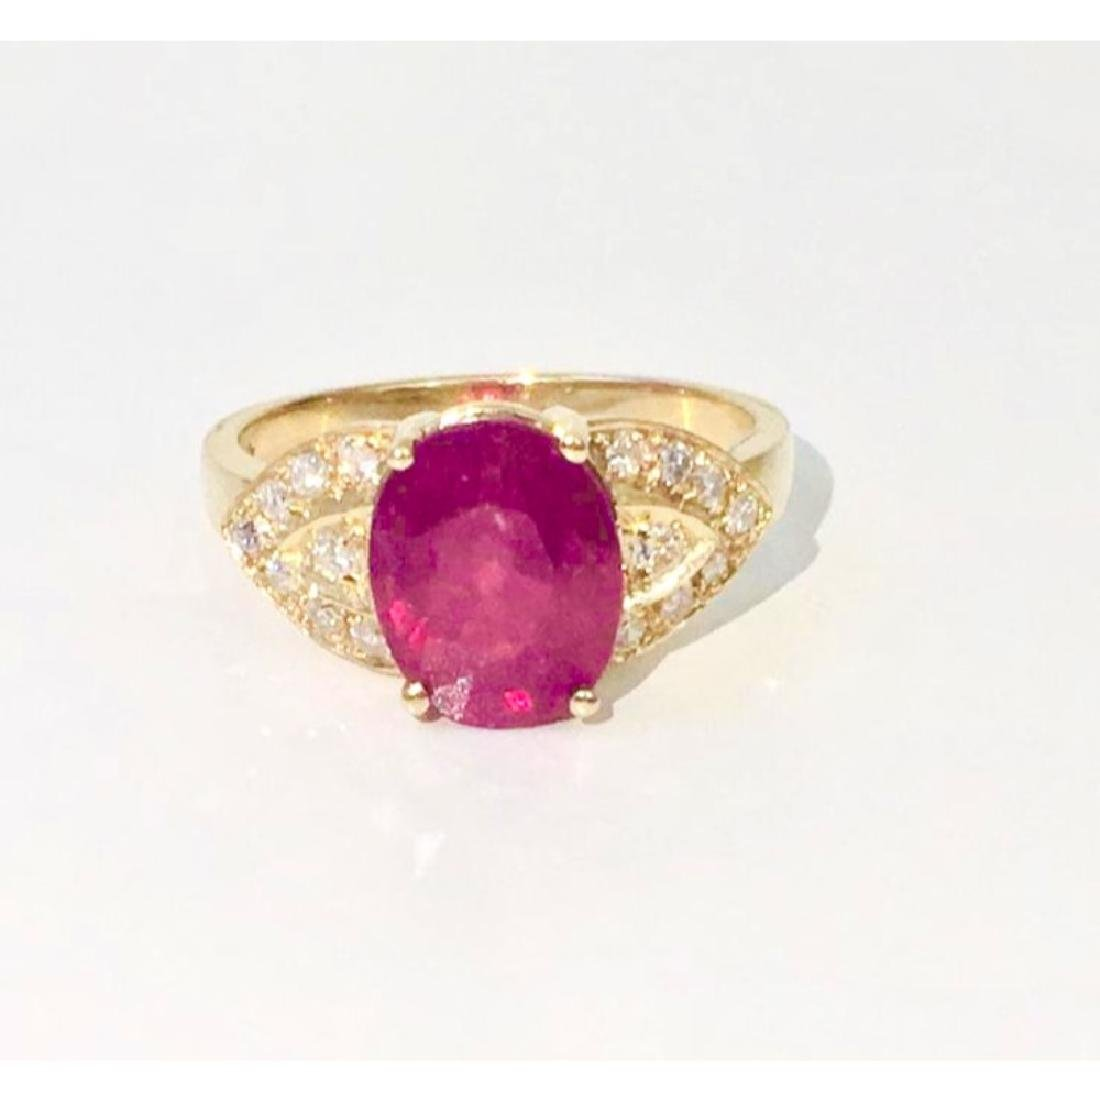 14K Gold, 4.50 CT Ruby and Diamond Ring